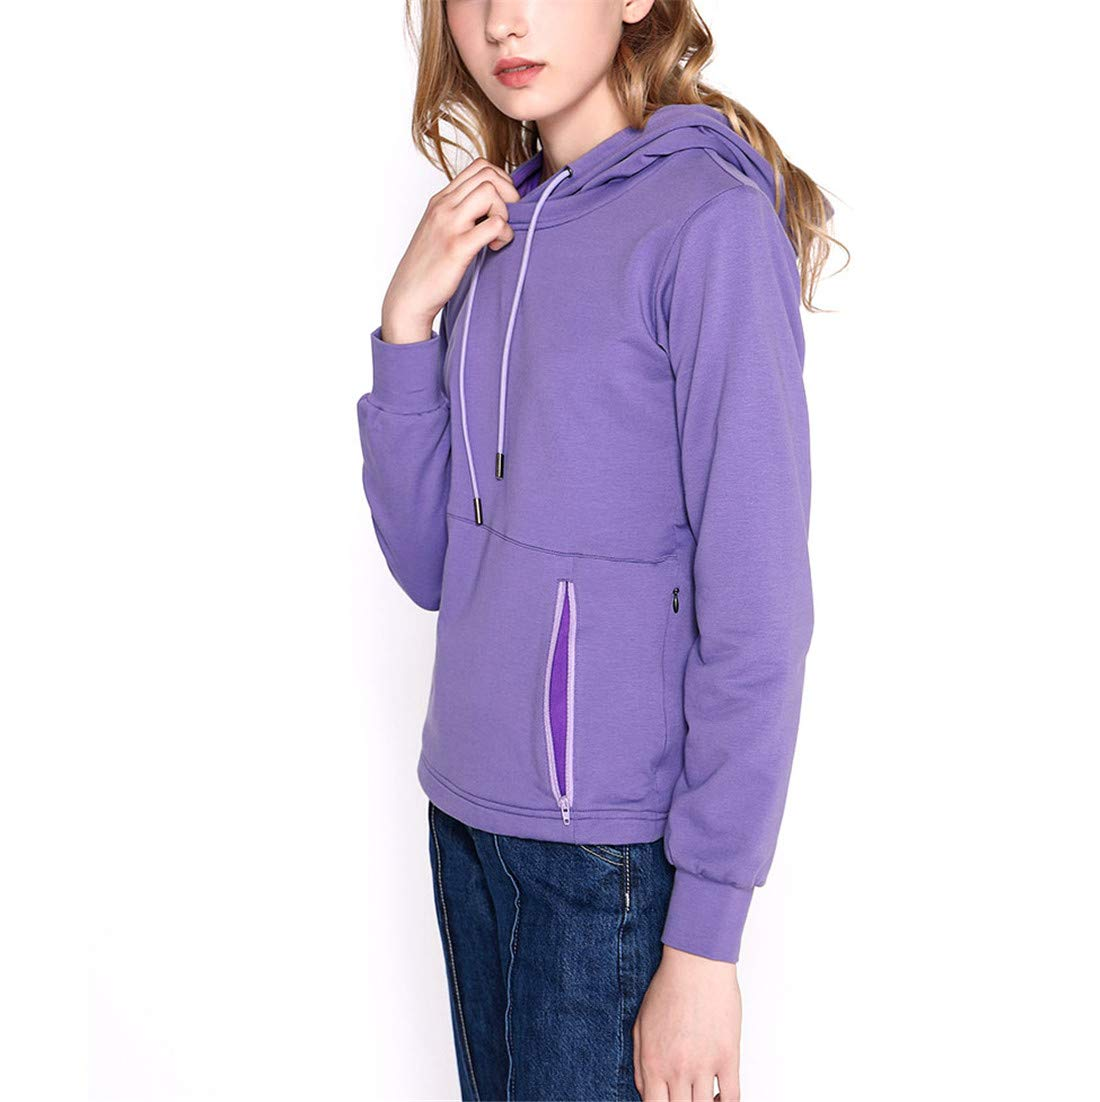 Purple Electric Heated Jacket Hooded Cotton Coat USB Heating Clothing Washable Winter Warm for Unisex Outdoor Camping Hiking